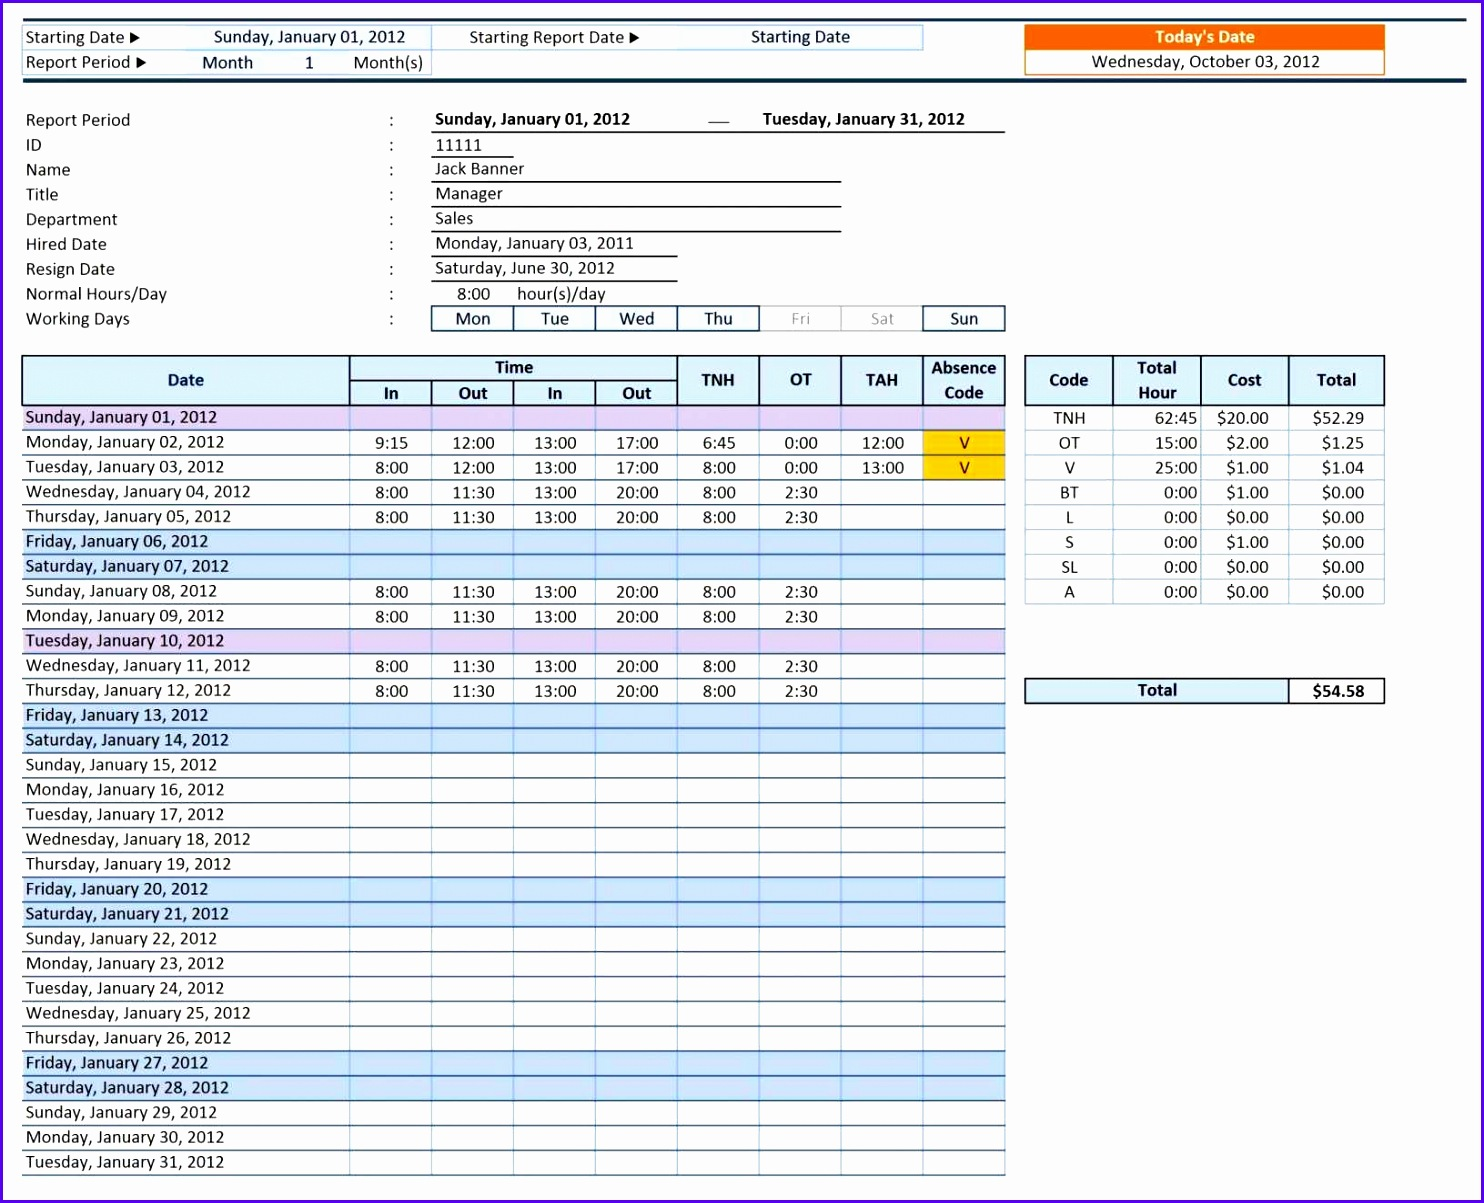 Full Size of Spreadsheet Template excel Templates Free Excel Templates Size of Spreadsheet Template excel Templates 14841203